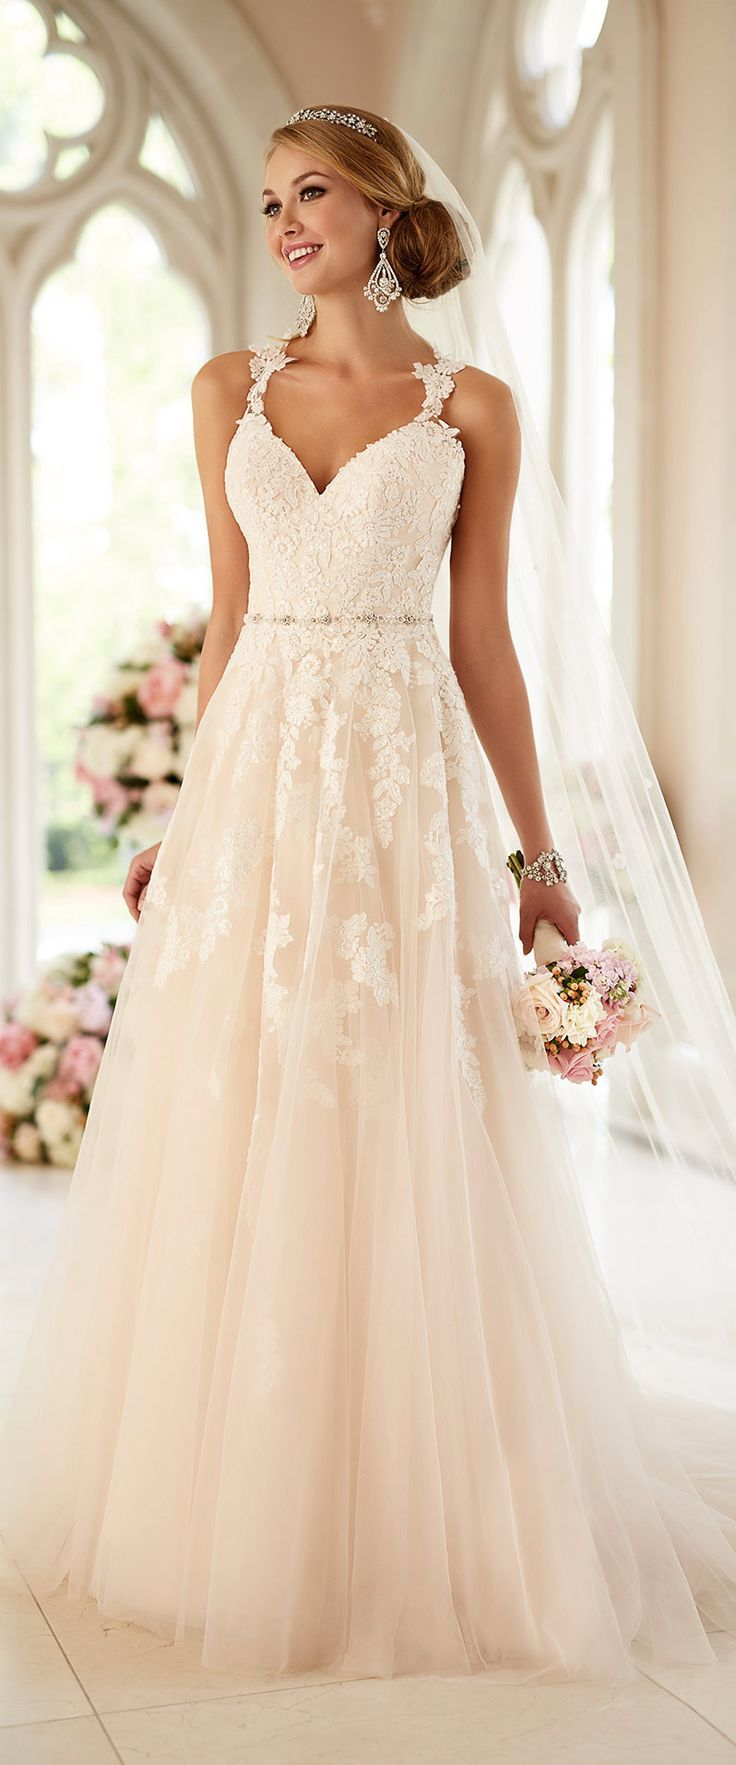 Stella York New Wedding Dress Collection 2016 | Lace Wedding Dresses ...